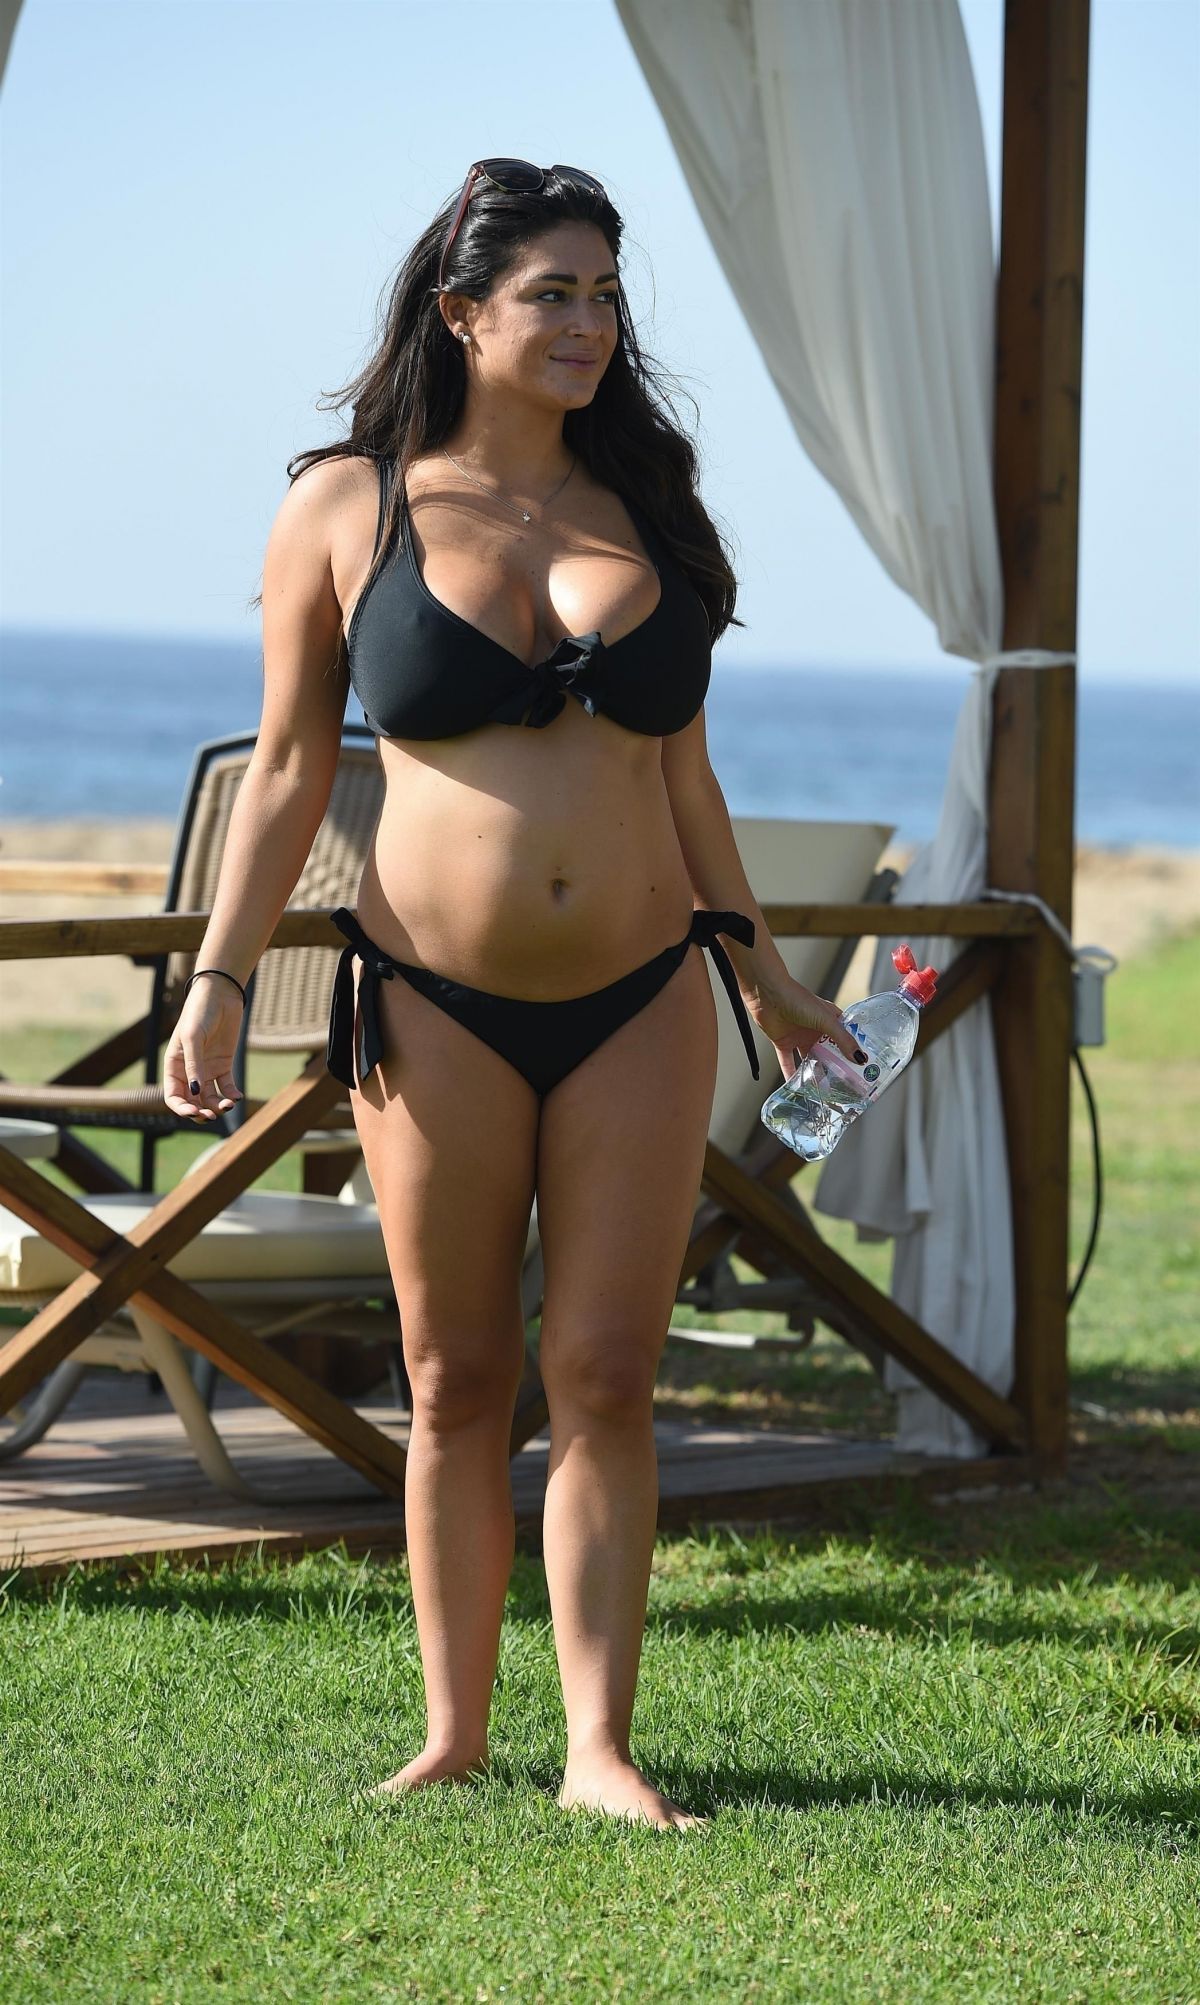 Casey Batchelor in a Bikini on the pool in Lanzarote Pic 32 of 35